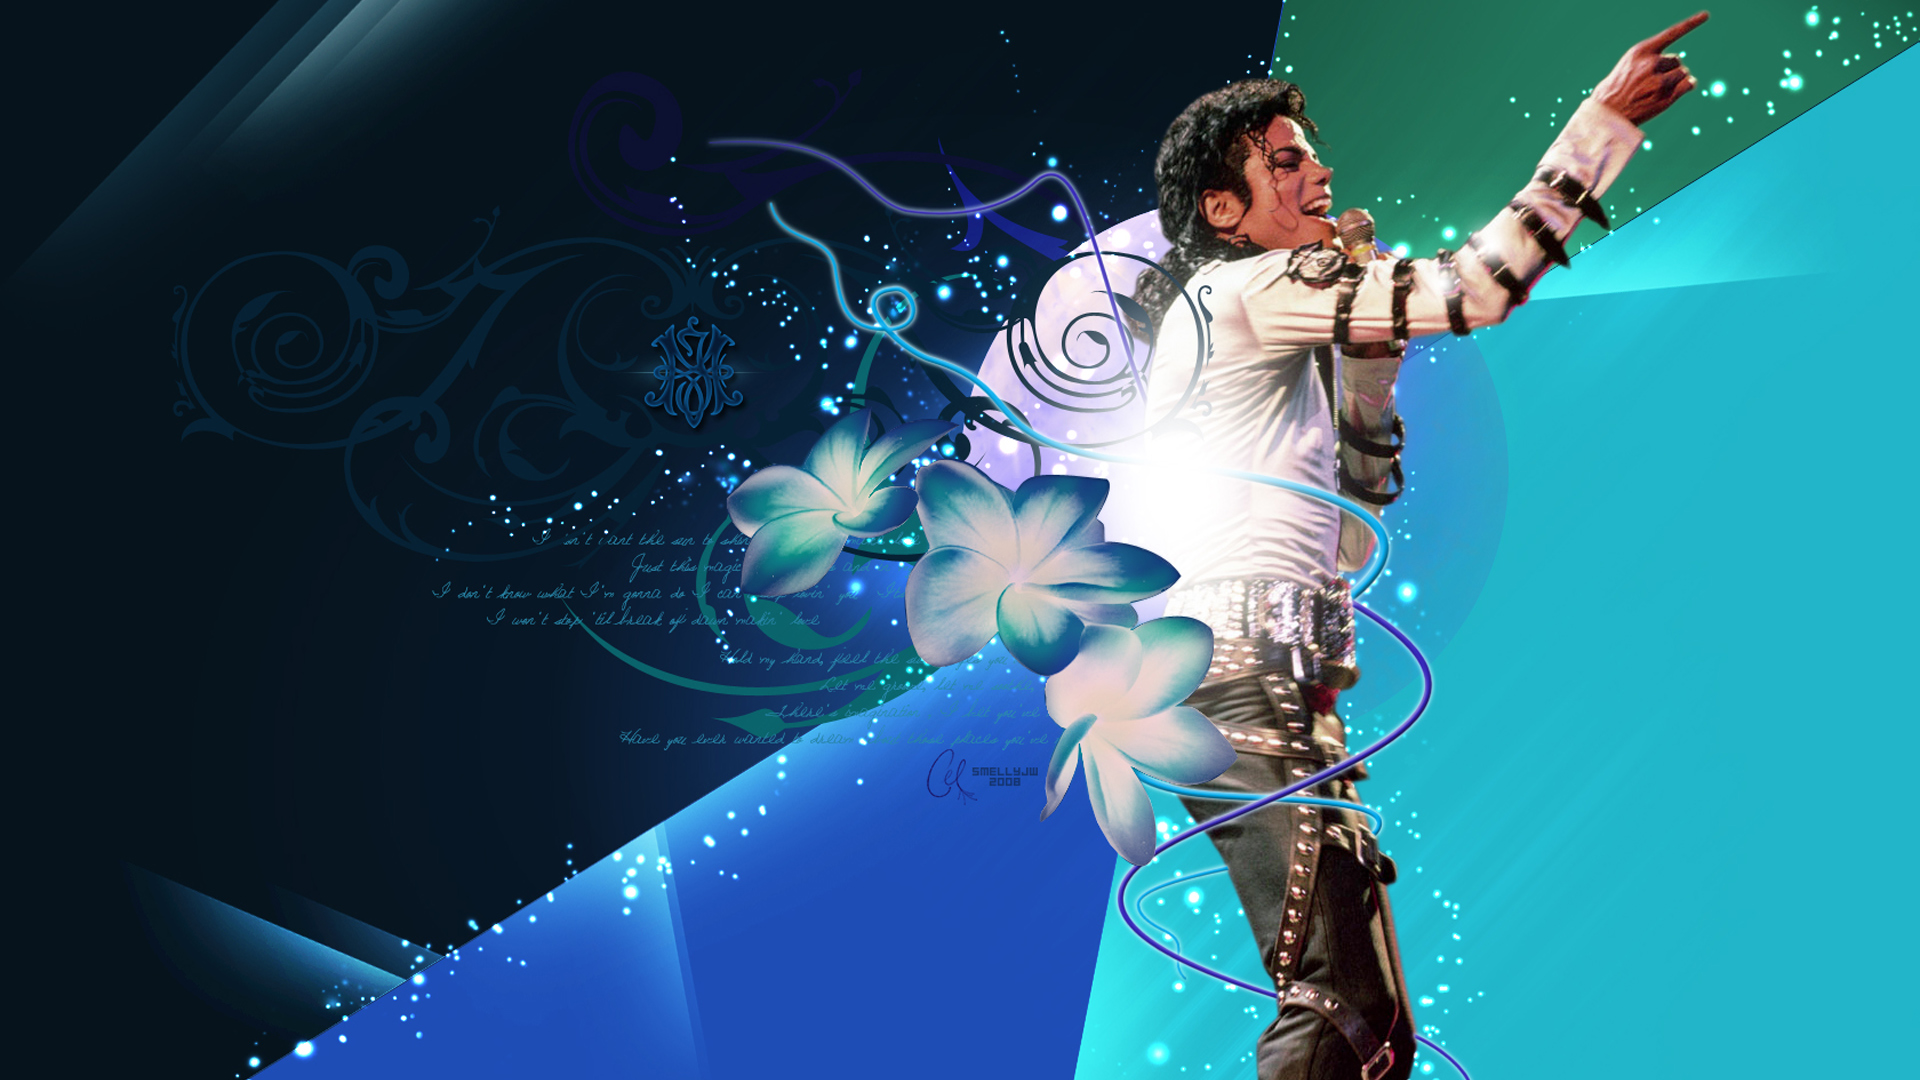 michael jackson wallpaper wallpapers memory images image 1920x1080